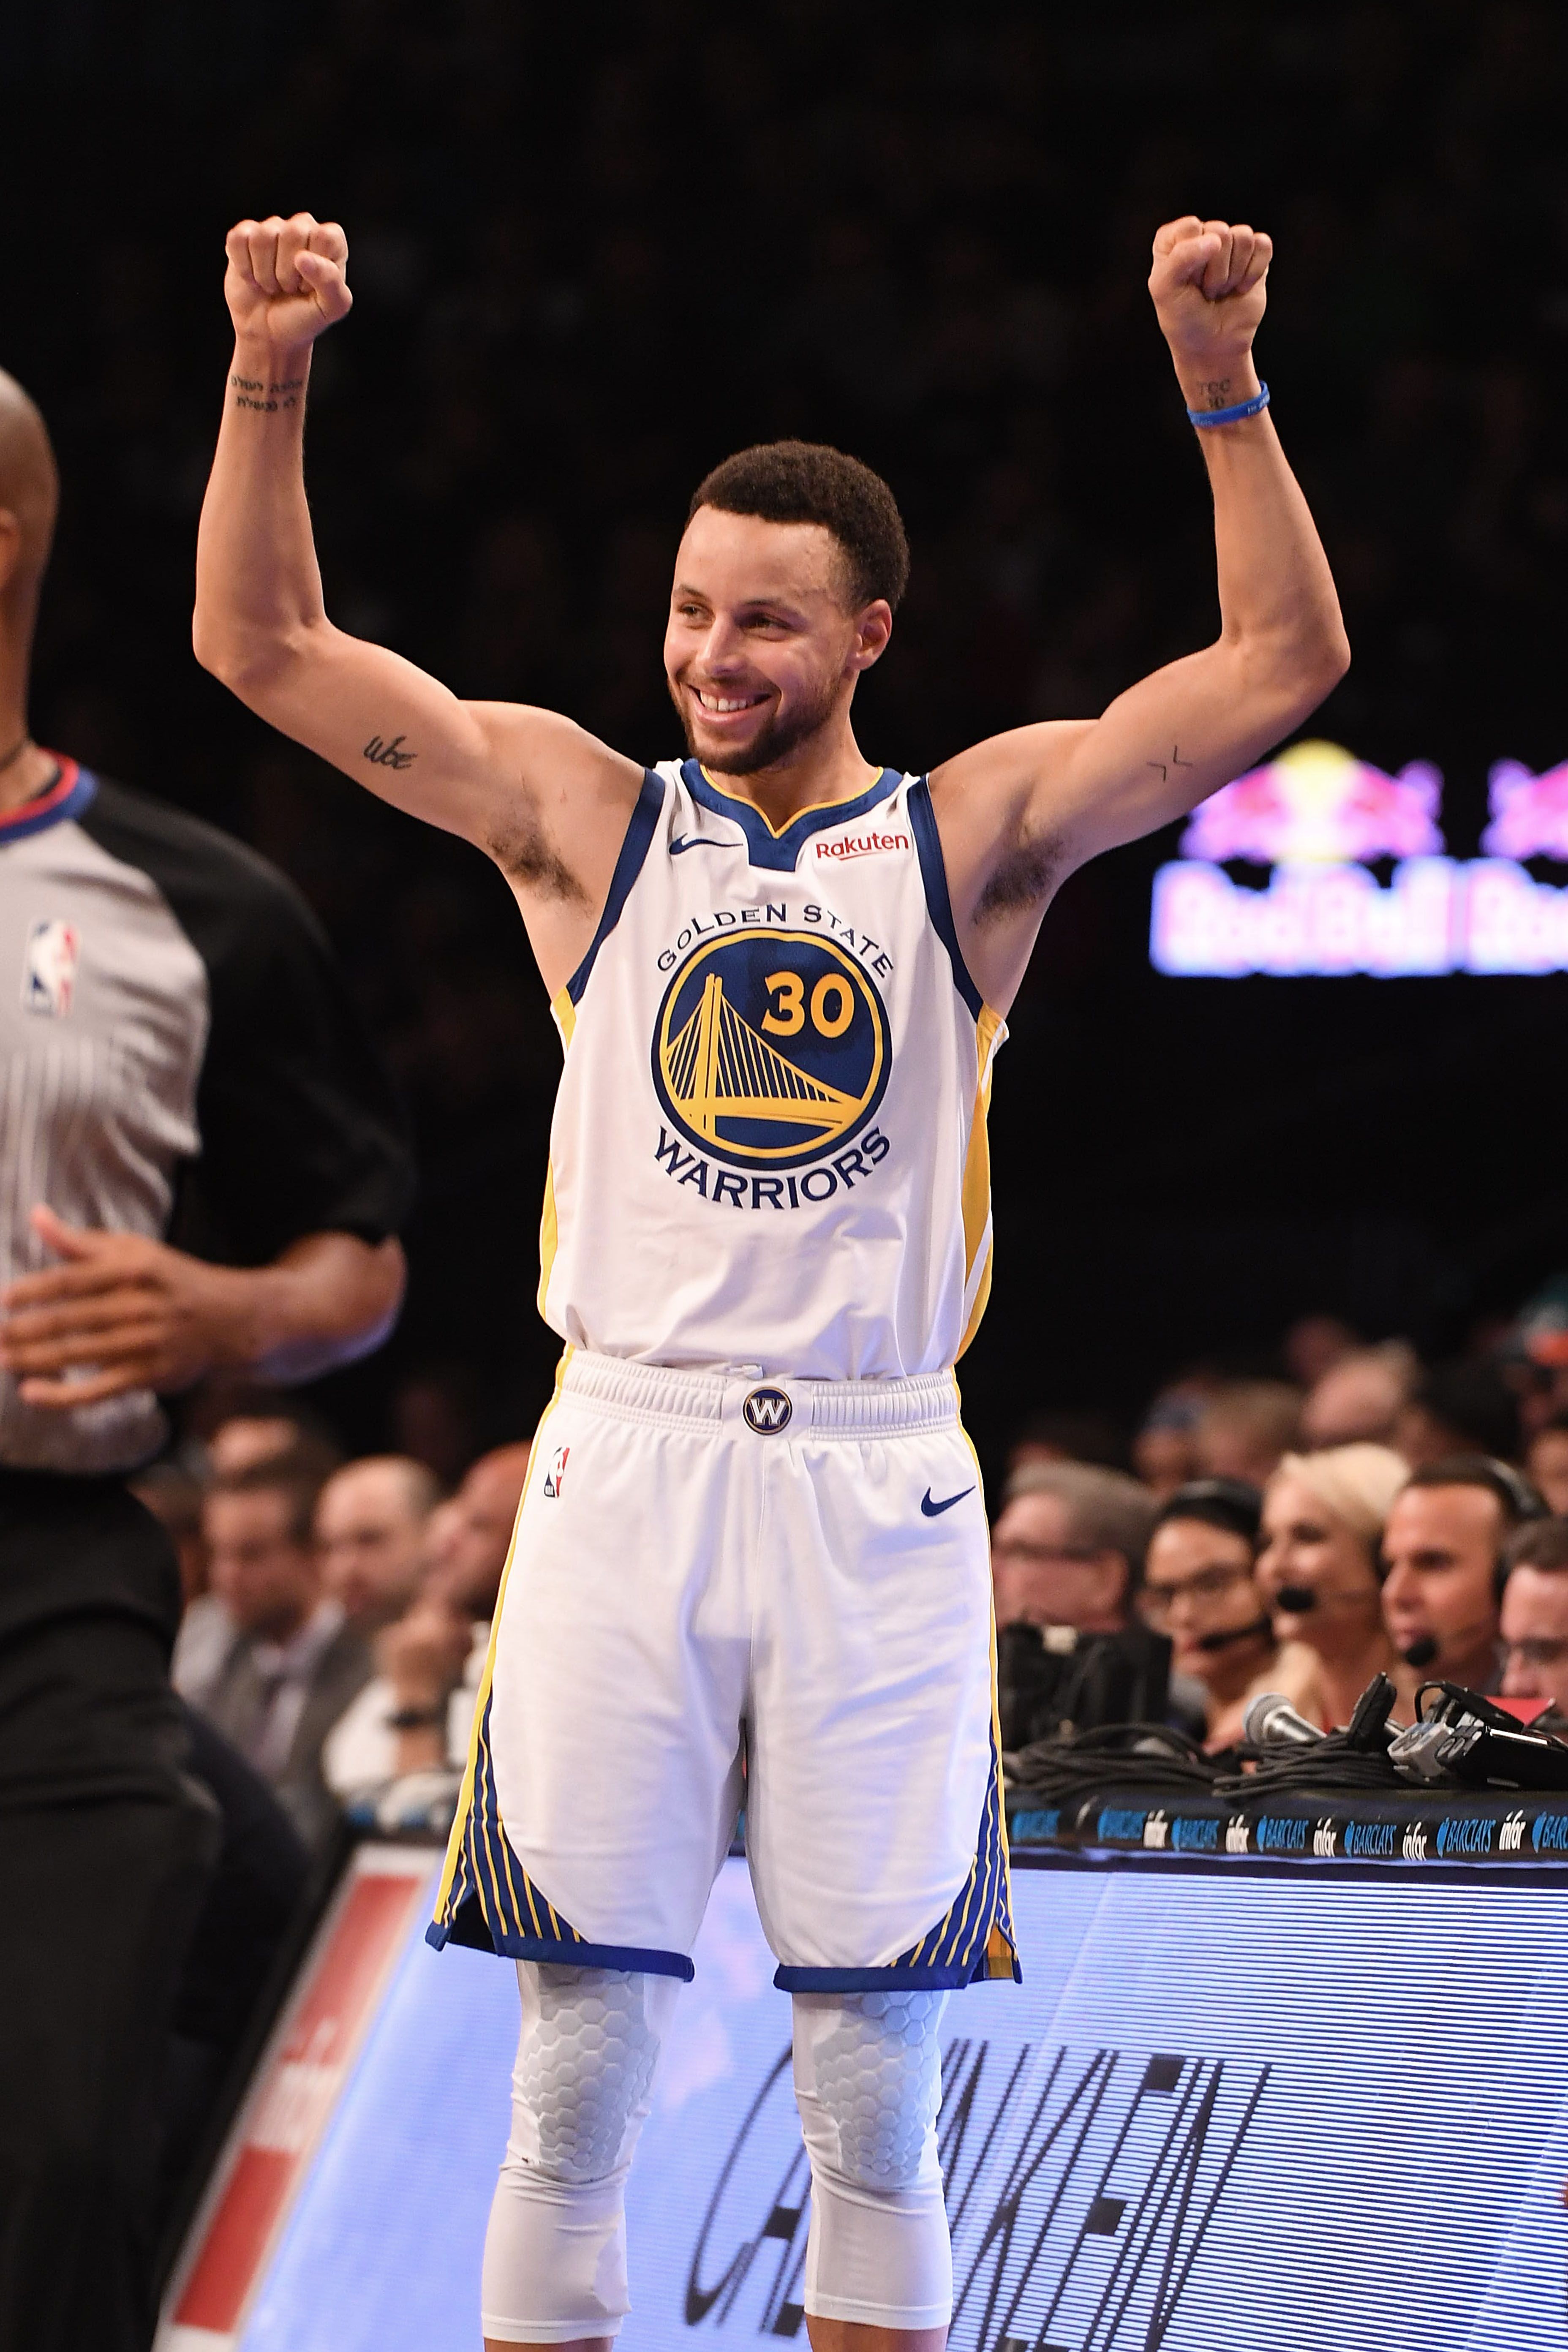 Why Steph Curry Got His Under Armour Sneakers Listed in the Girls Section 1cda0b290